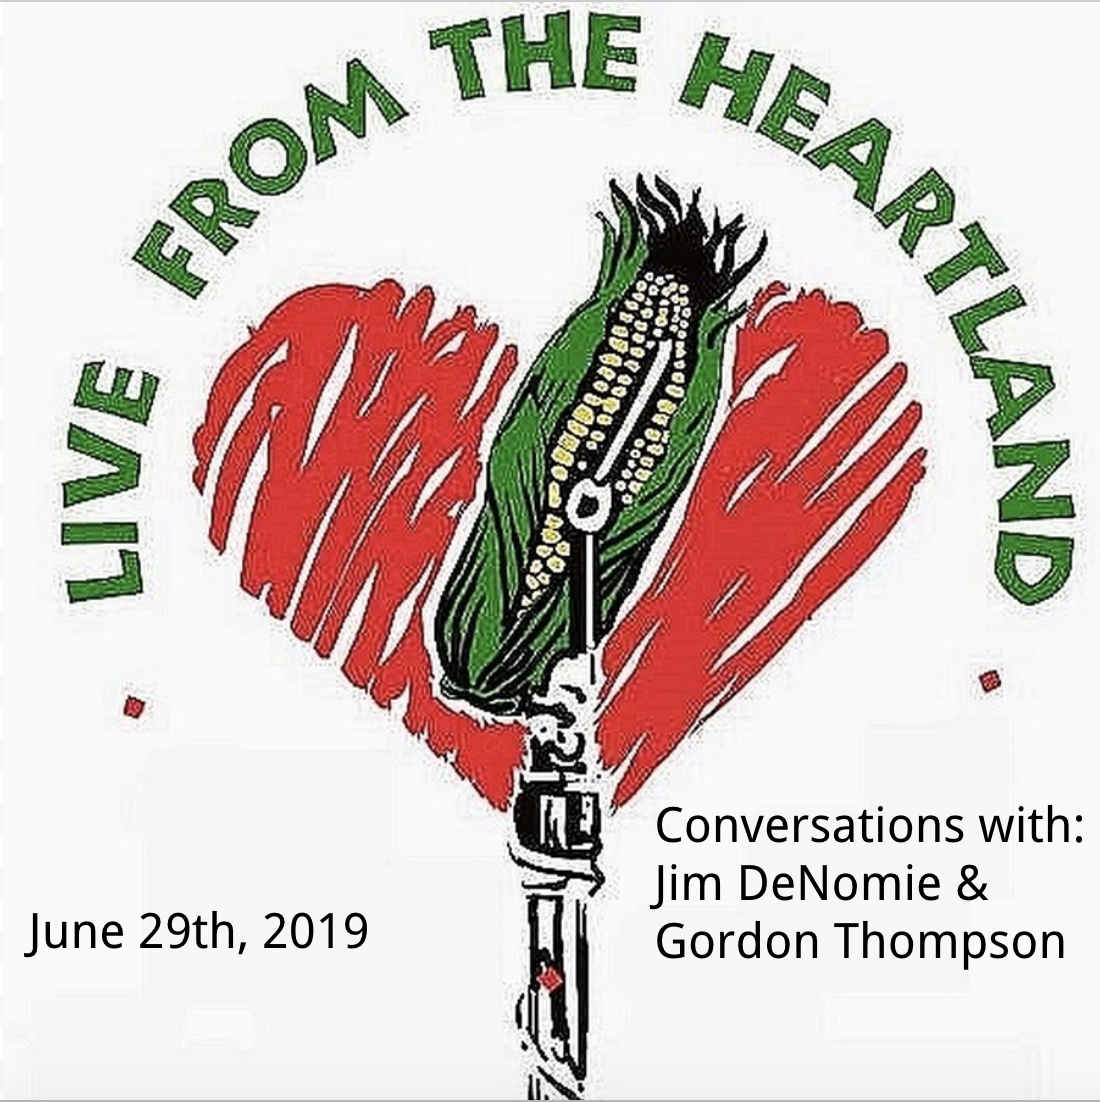 June 29th, 2019 - Co-Hosts: Michael James, Katy Hogan, & Thom ClarkThis show's guests include: Jim DeNomie & Gordon ThompsonEngineer: Jake Levy